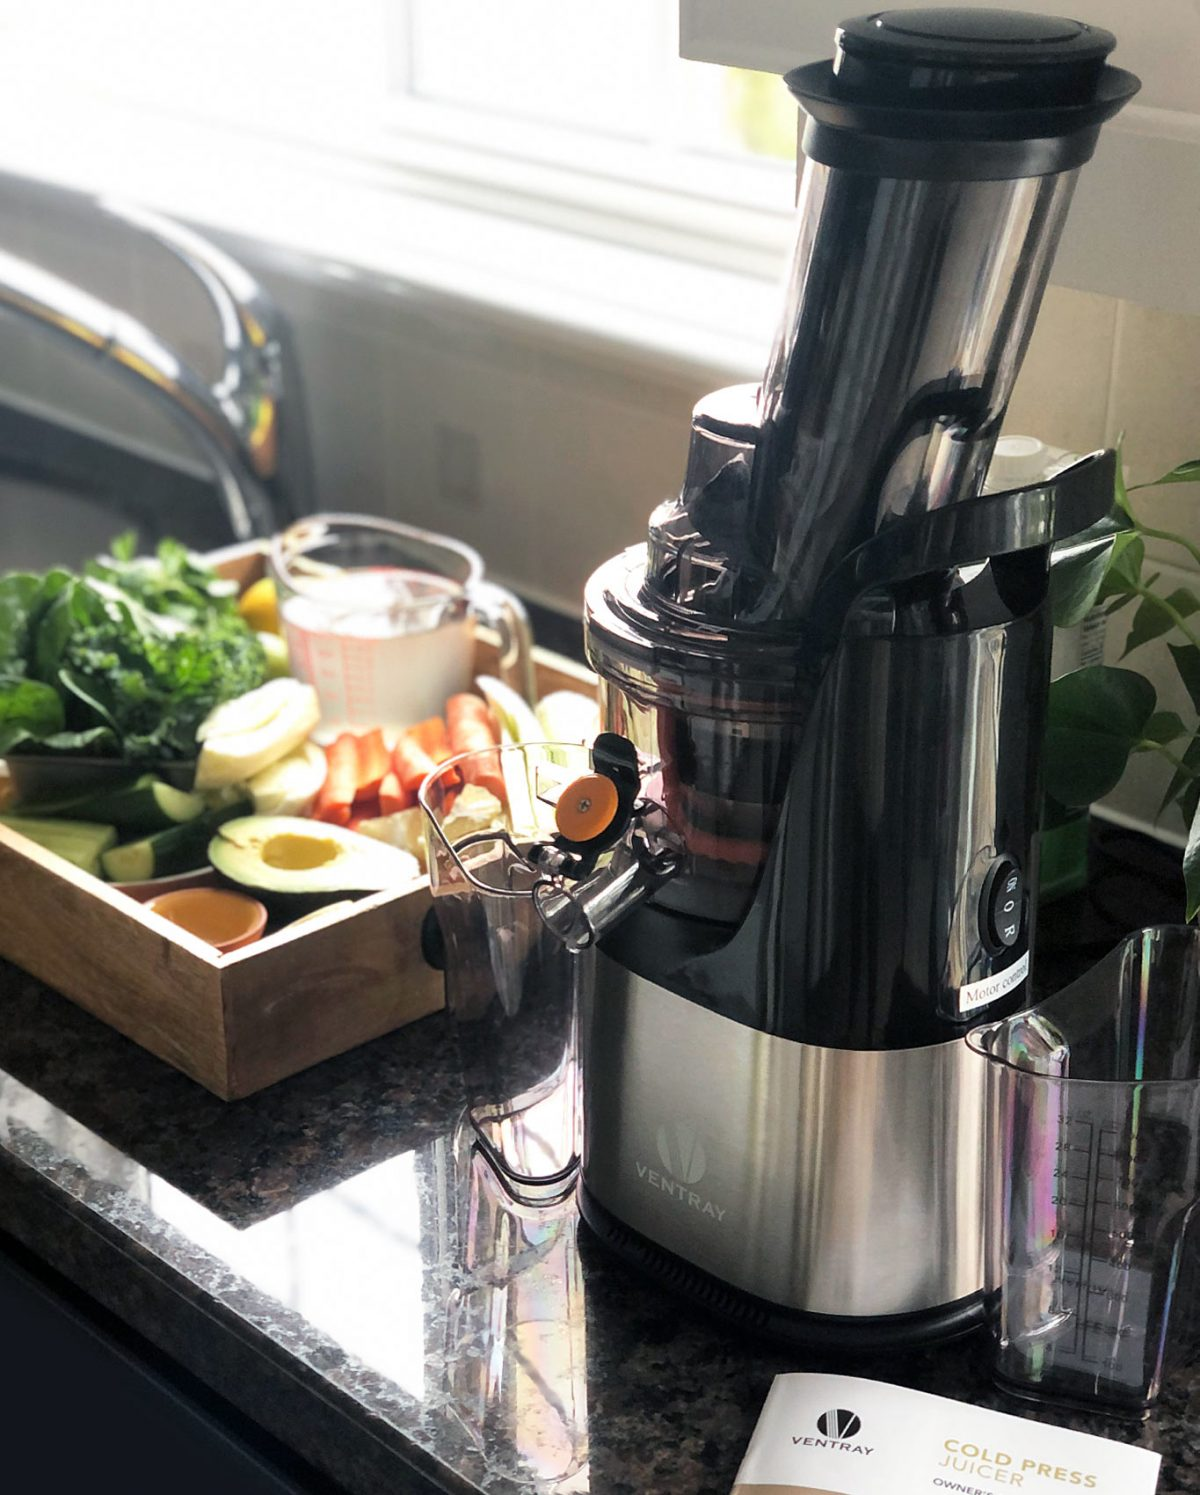 Small Ventray Juicer 408 for easy vegetable and fruit juice extraction